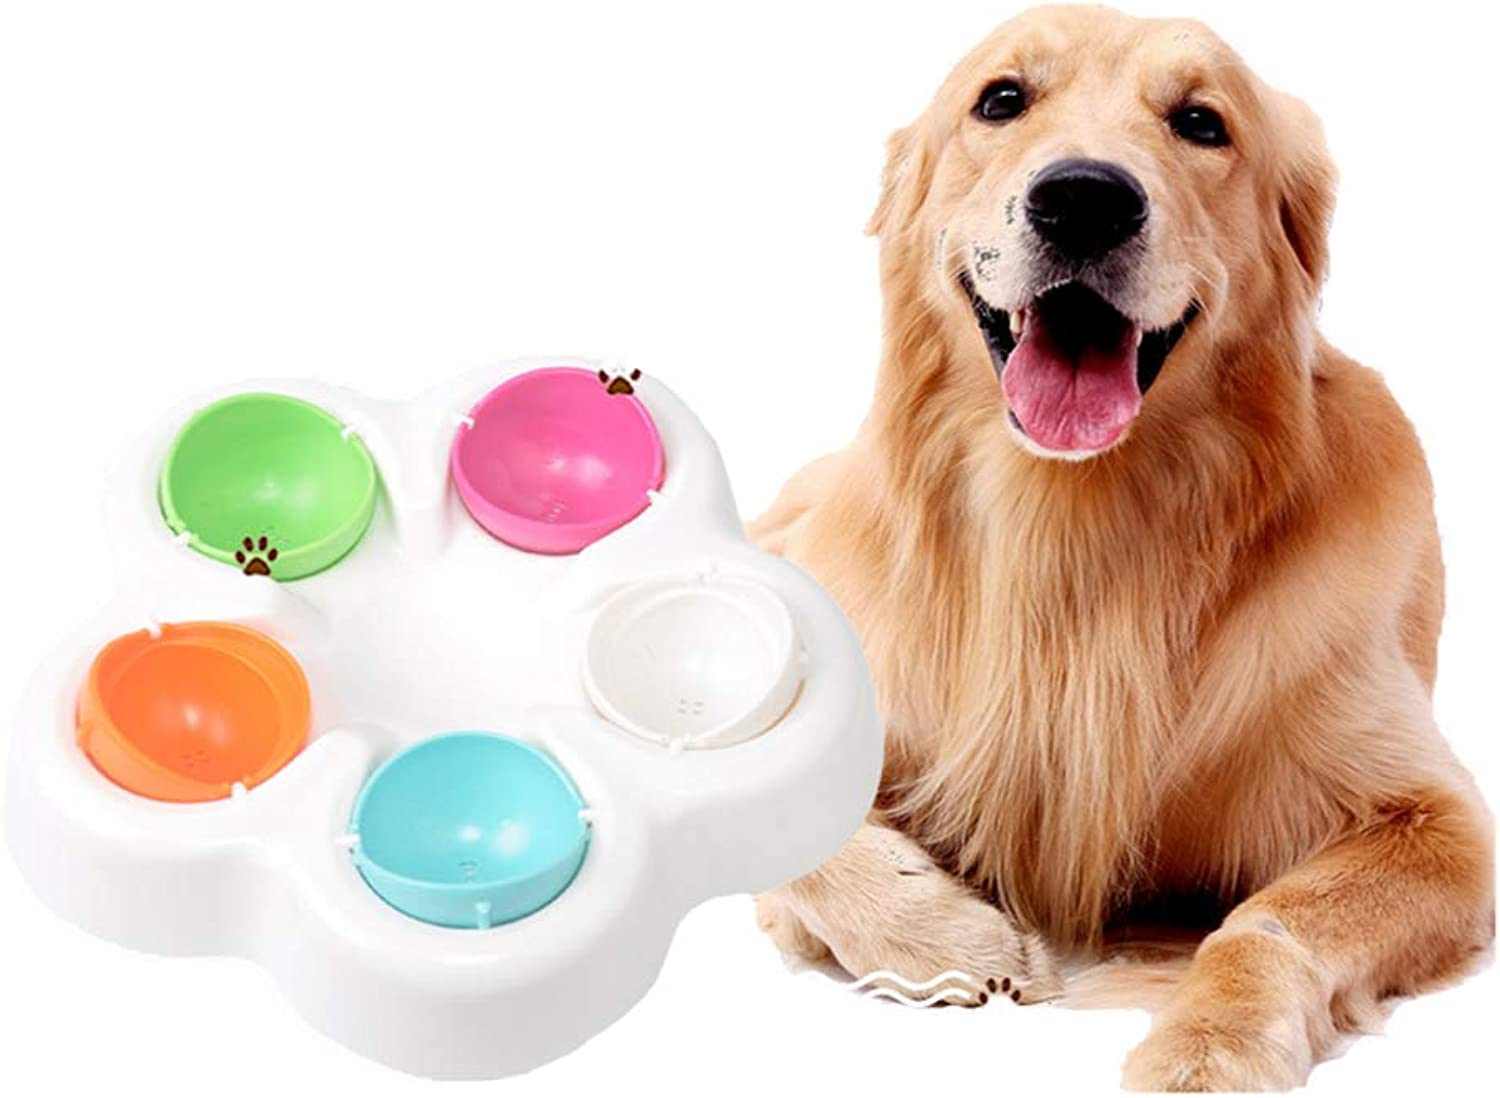 Pet Toy Treasure Hunt Slow Food Bowl Slow Feeder Dog Puzzle Training Toys Eat Slow Food Bowl Smart Interactive Toys